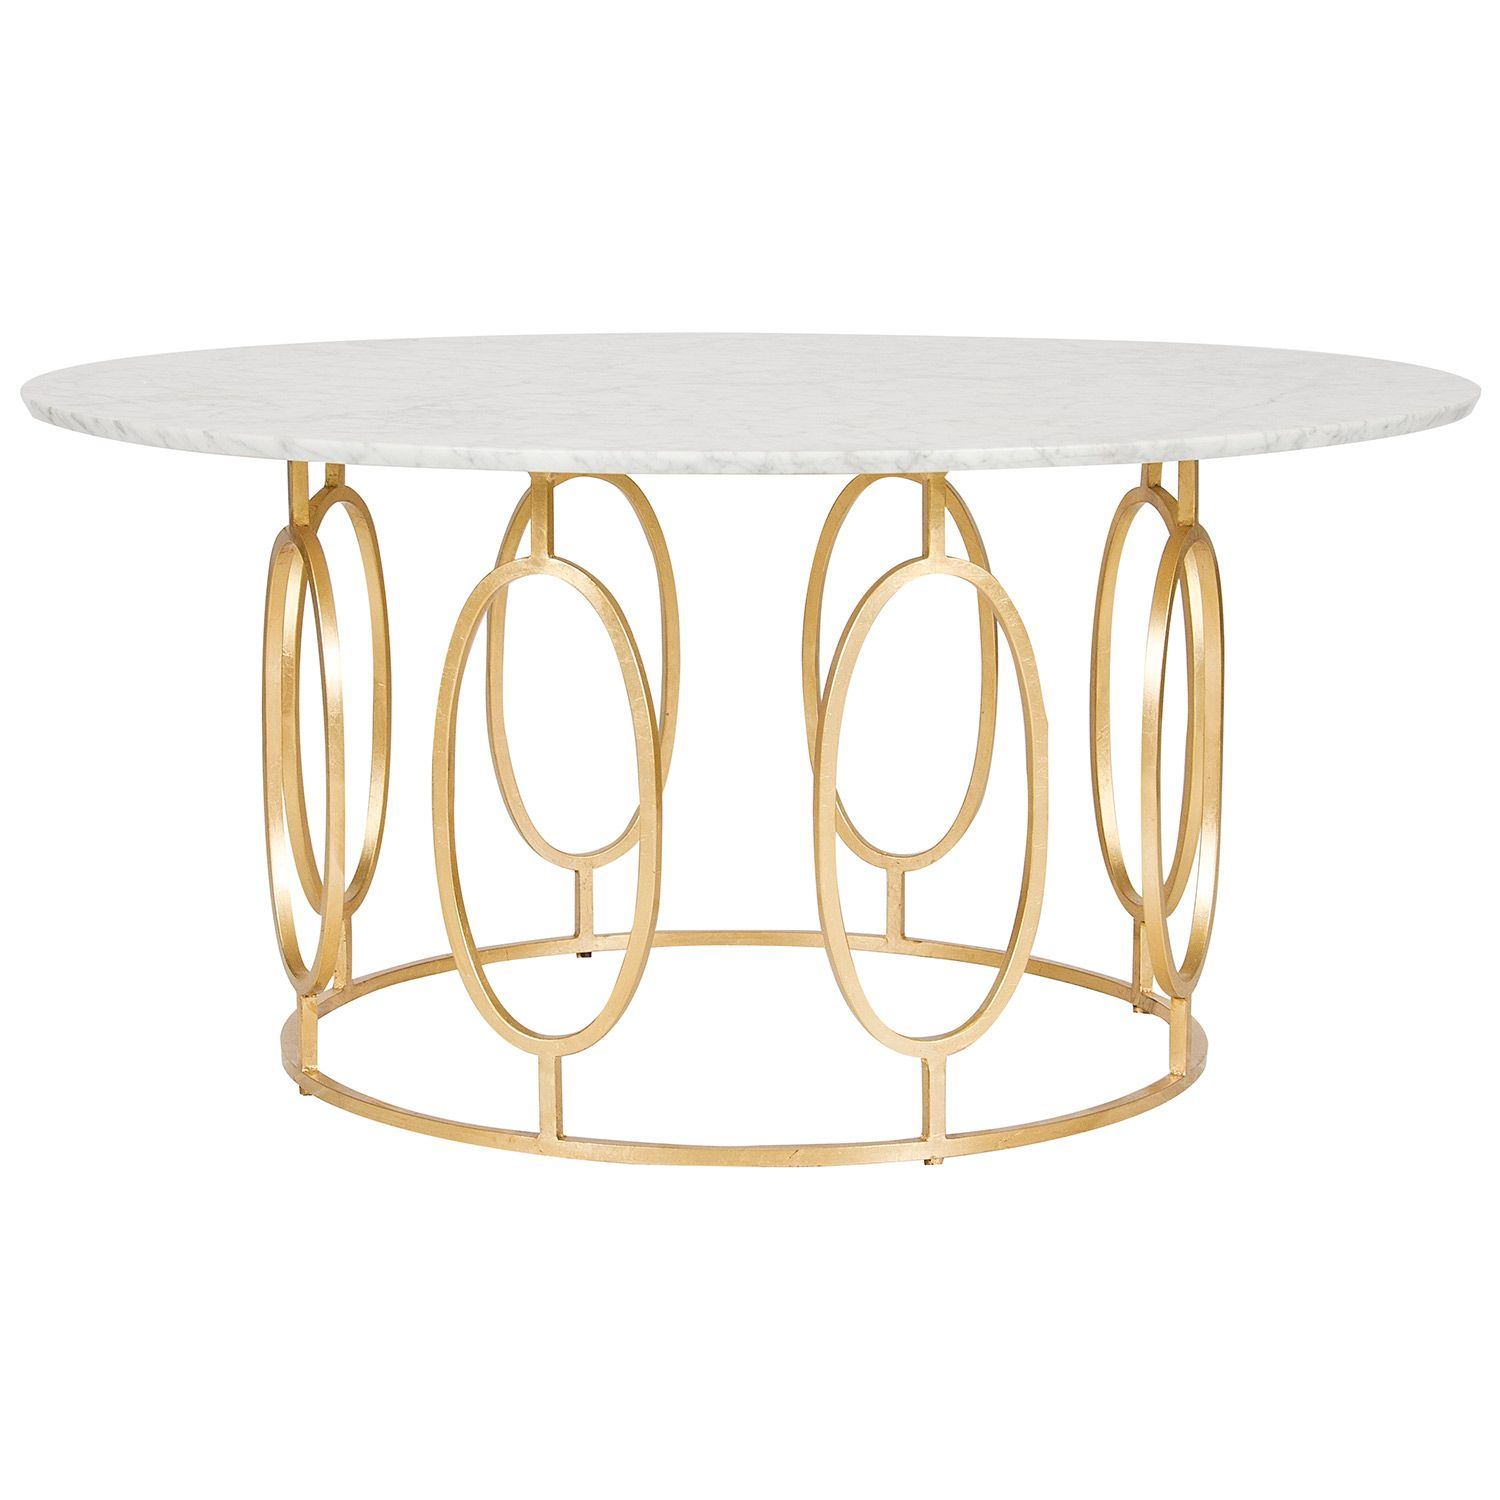 Coco Nesting Round Glass Coffee Tables Glass Coffee Table Decor Round Glass Coffee Table Round Coffee Table Decor [ 1300 x 1000 Pixel ]